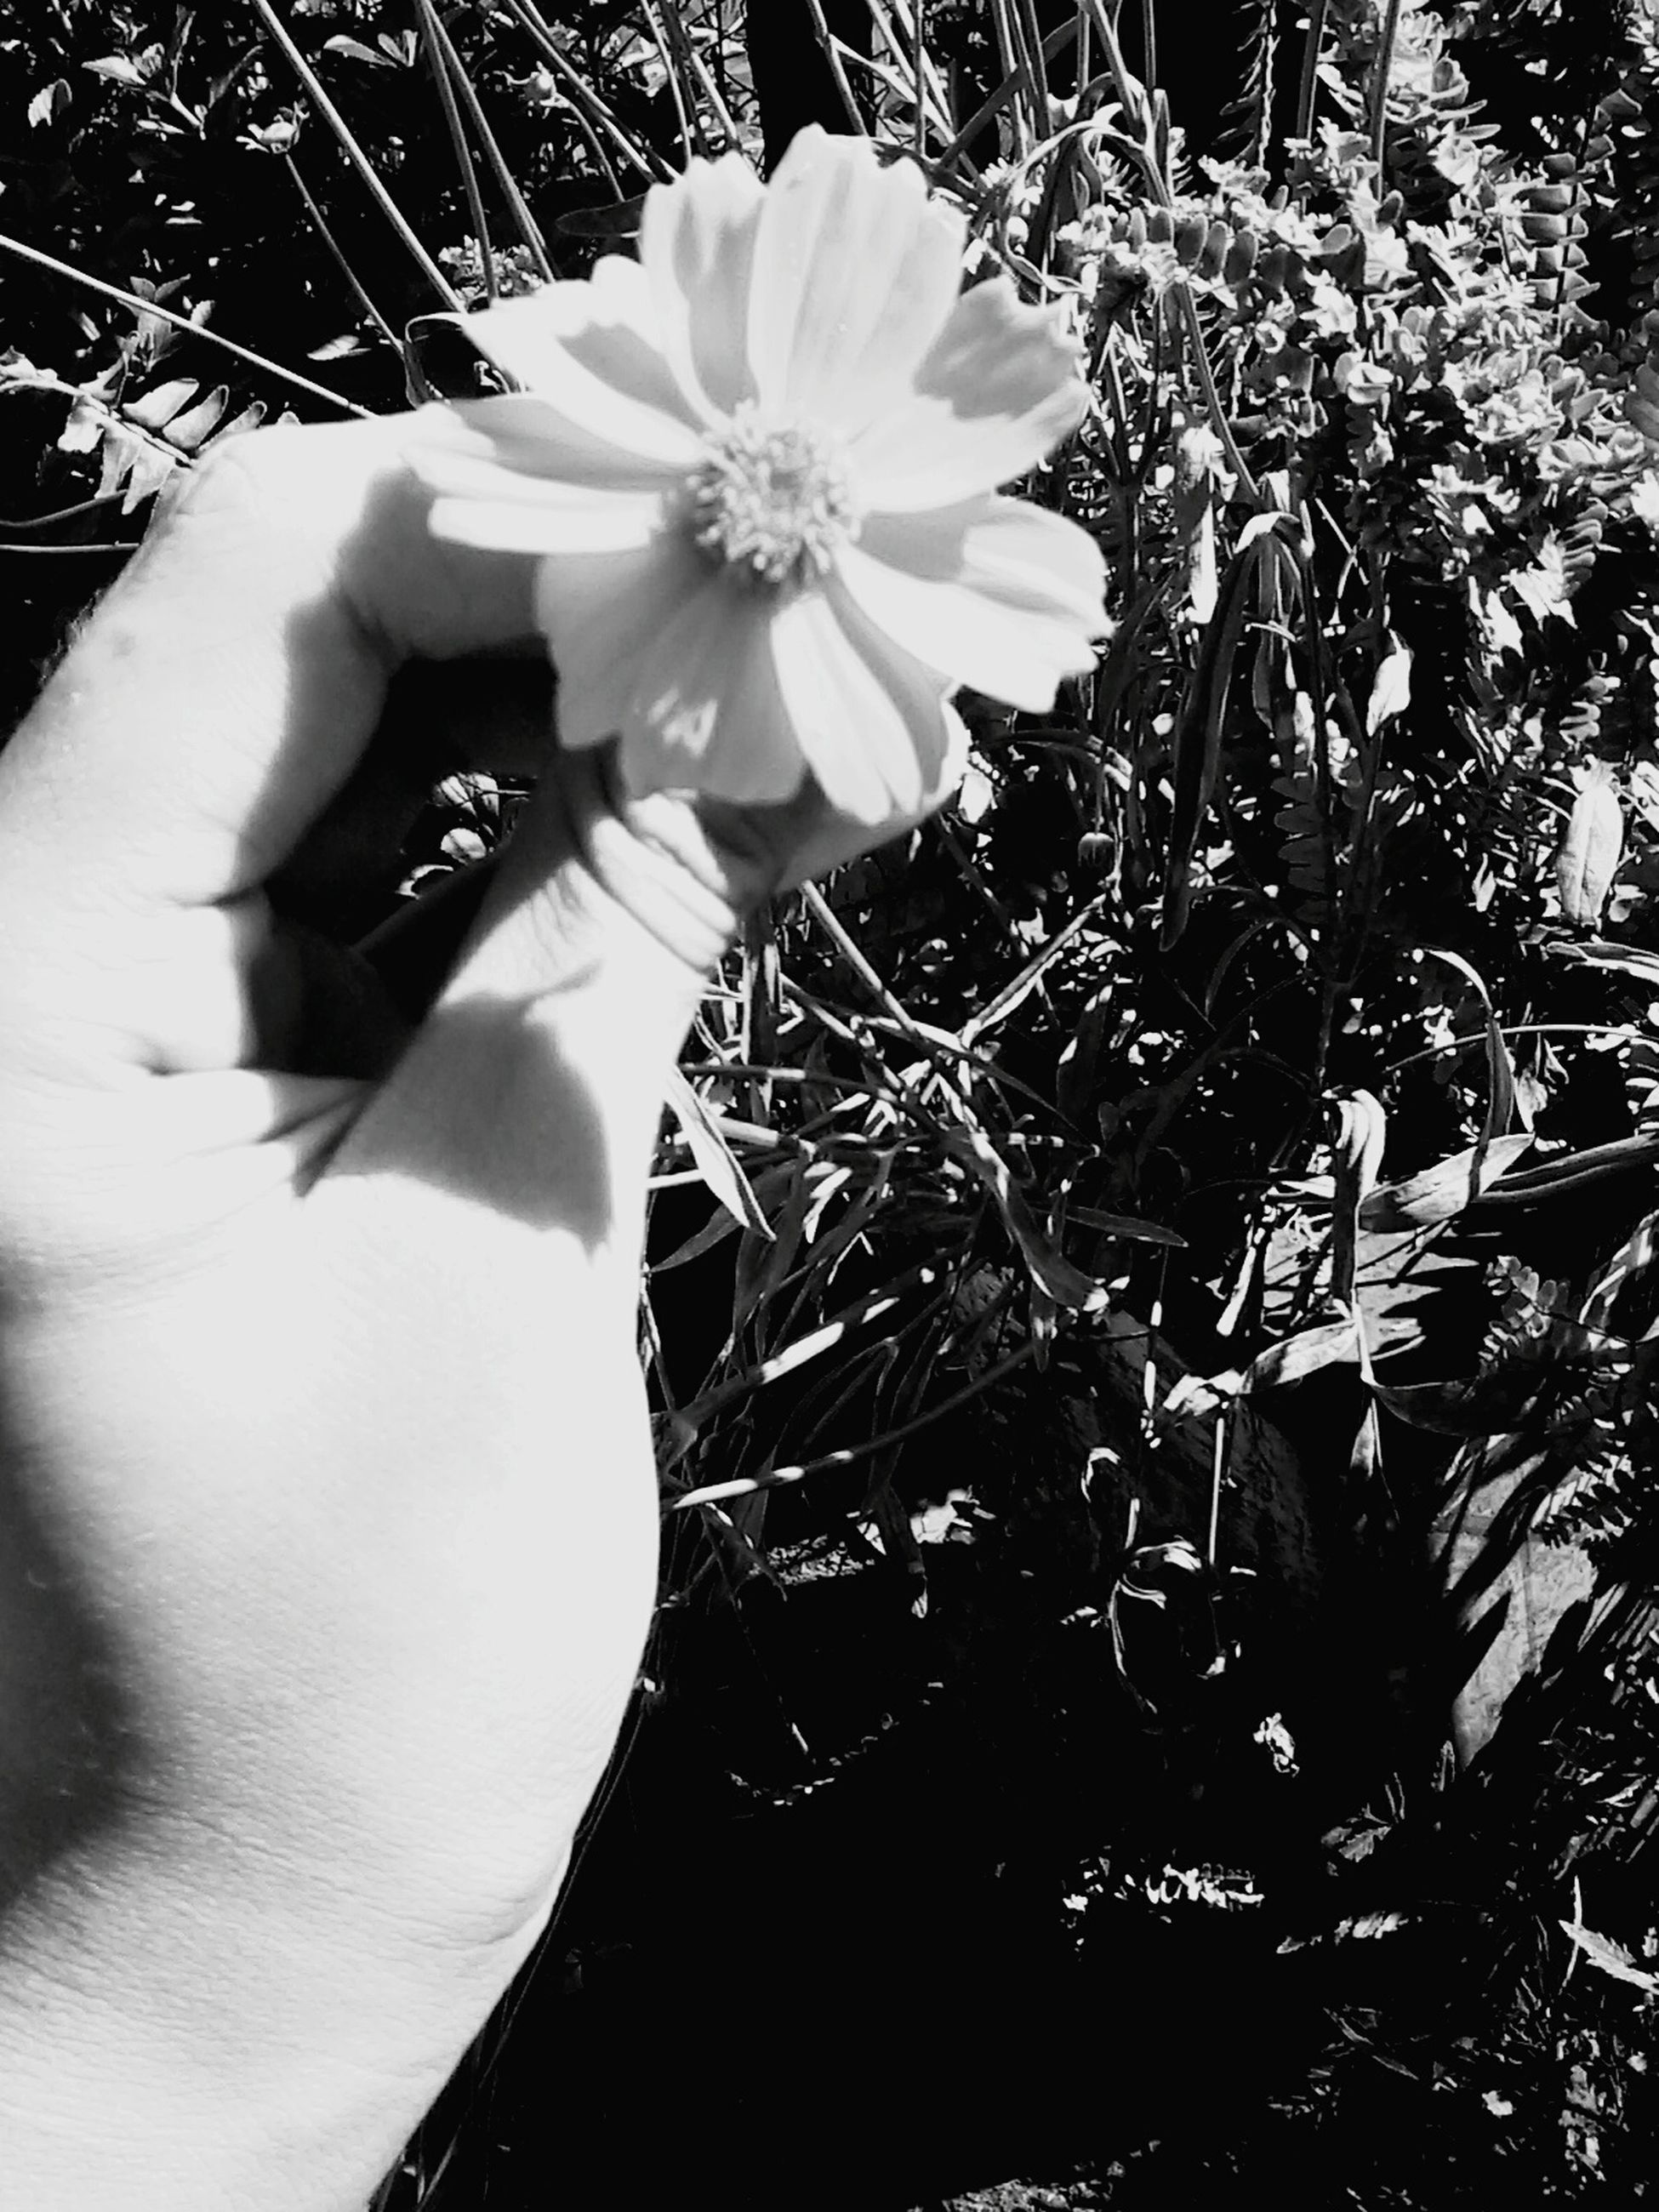 flower, human hand, one person, holding, sunlight, real people, fragility, outdoors, flower head, freshness, human body part, lifestyles, plant, day, close-up, nature, beauty in nature